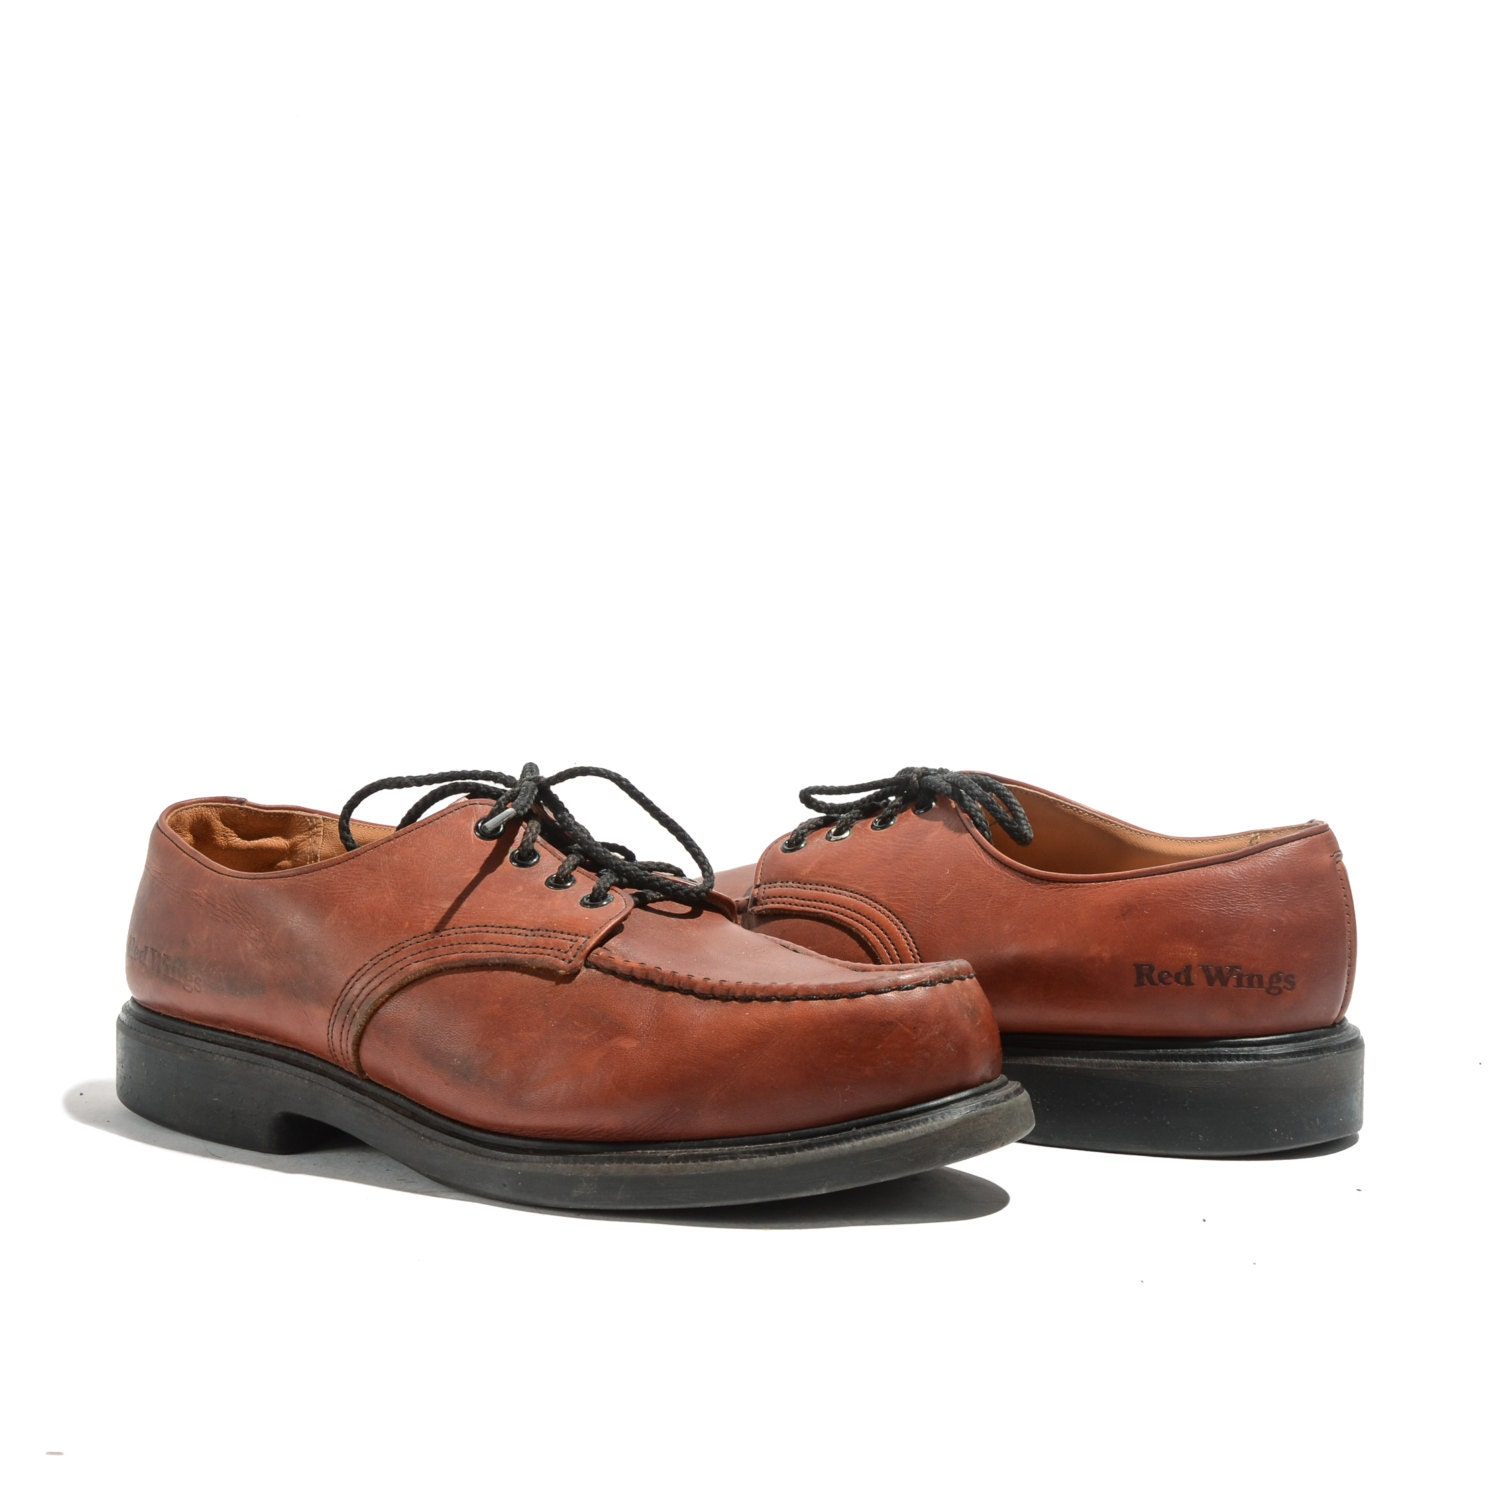 Red Wing Low Top Work Shoes Ee